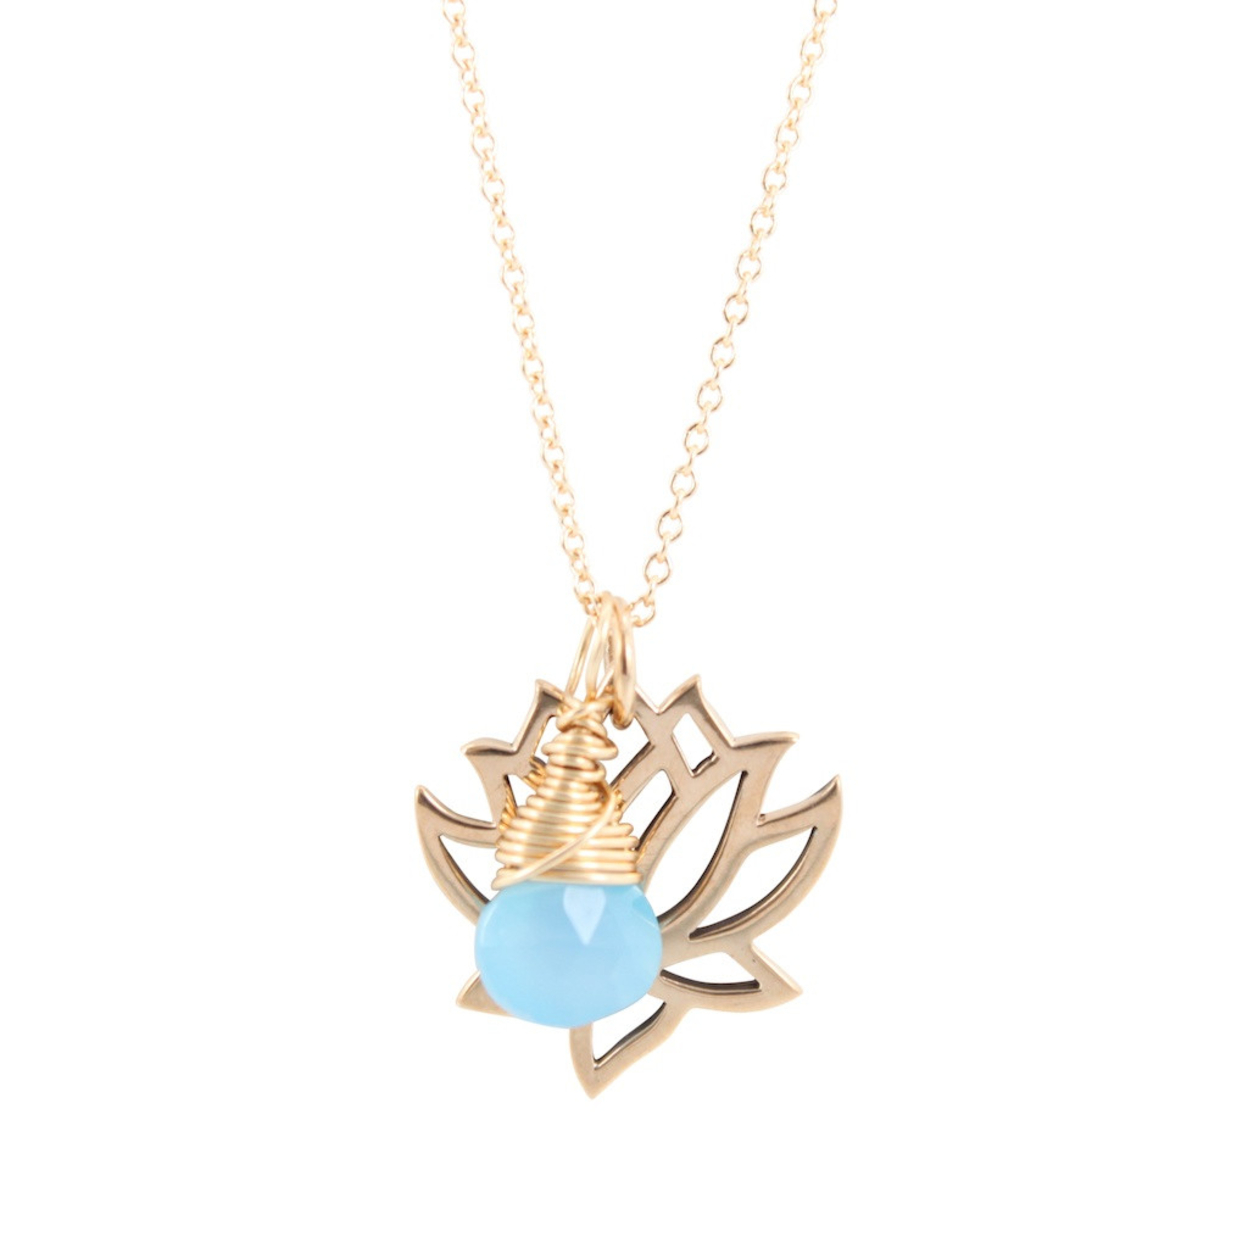 Bronze Lotus Necklace with Blue Chalcedony Briolette, #6850-brz - 16 5468e5687aaaaa4773000073